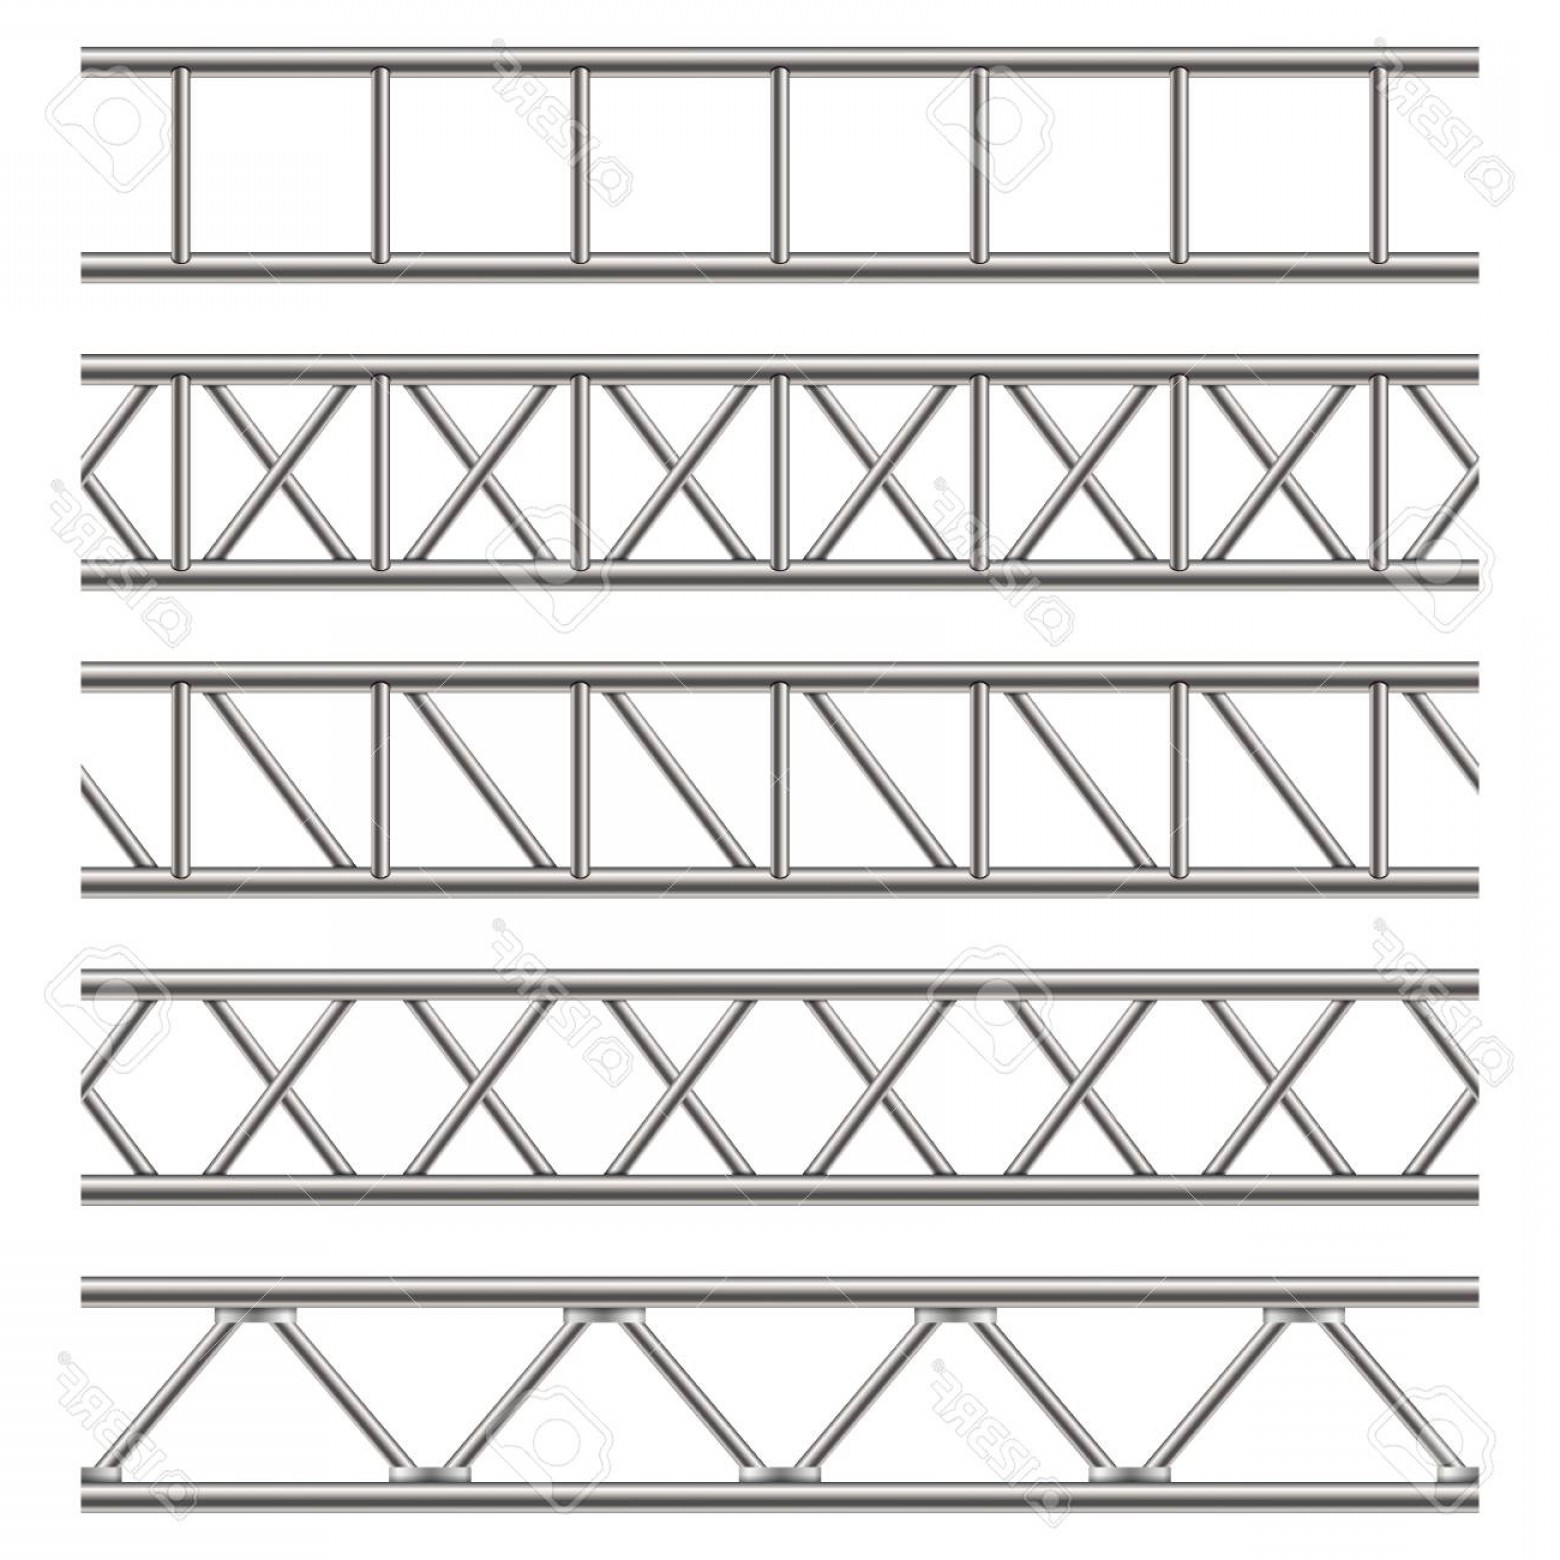 Aluminum Truss Design Vector: Photostock Vector Creative Vector Illustration Of Steel Truss Girder Pipes Isolated On Transparent Background Art Desi